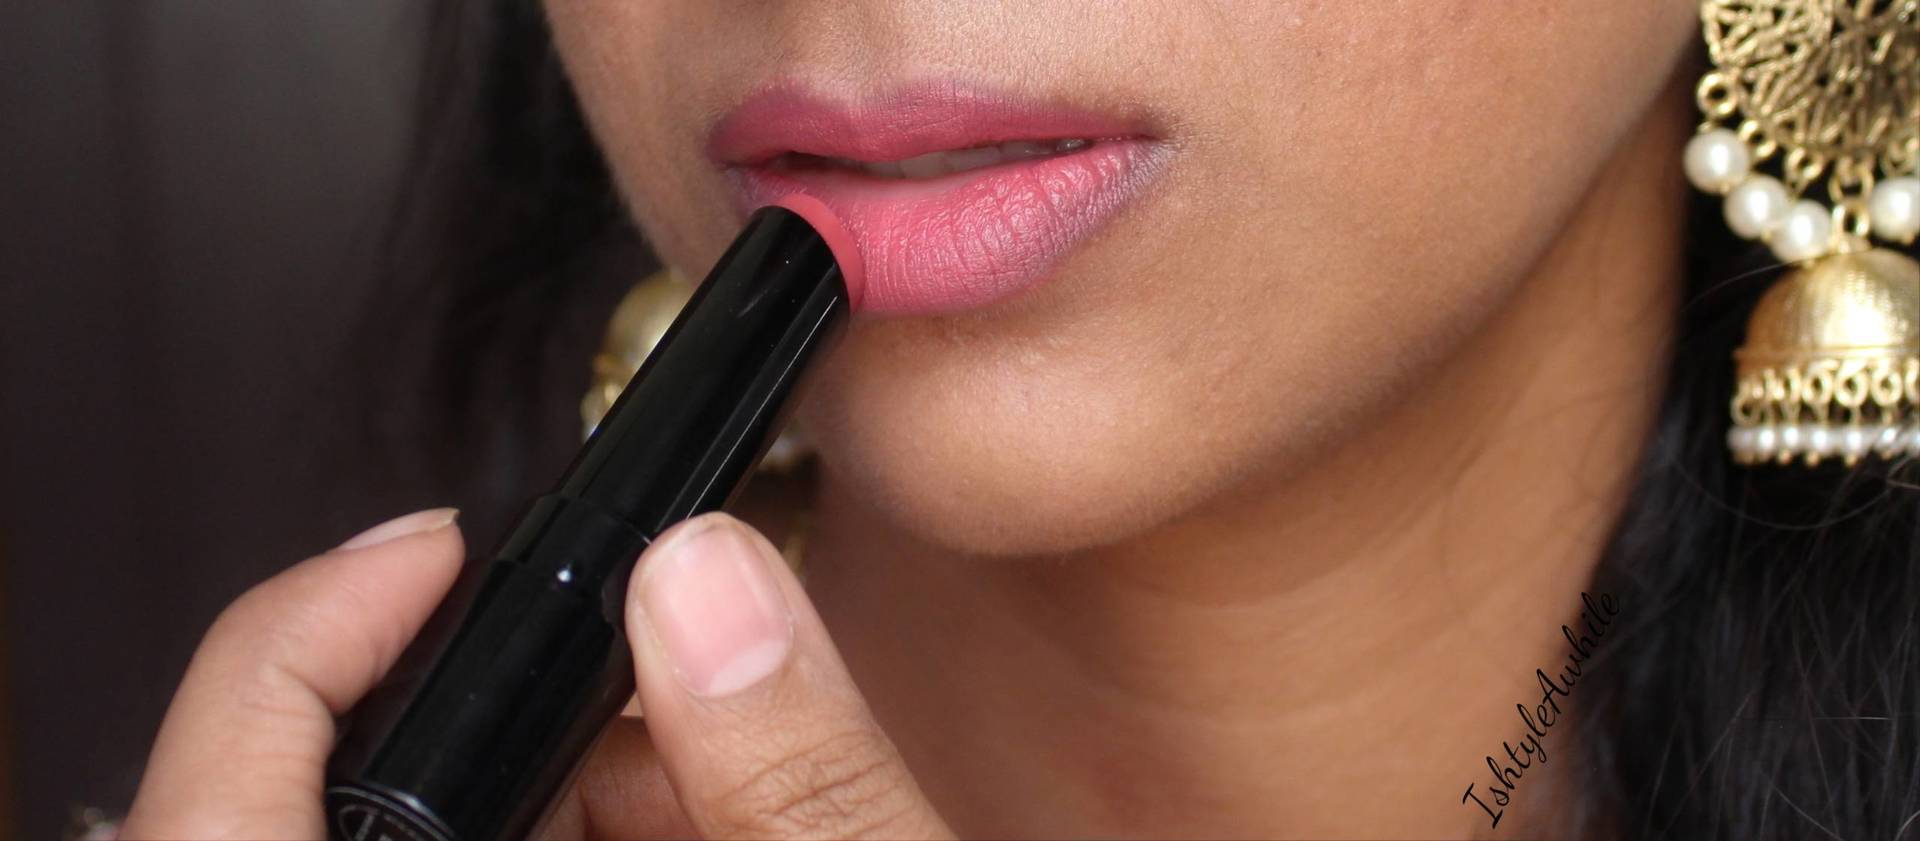 IshtyleAwhile - Vegan lipstick brand in india